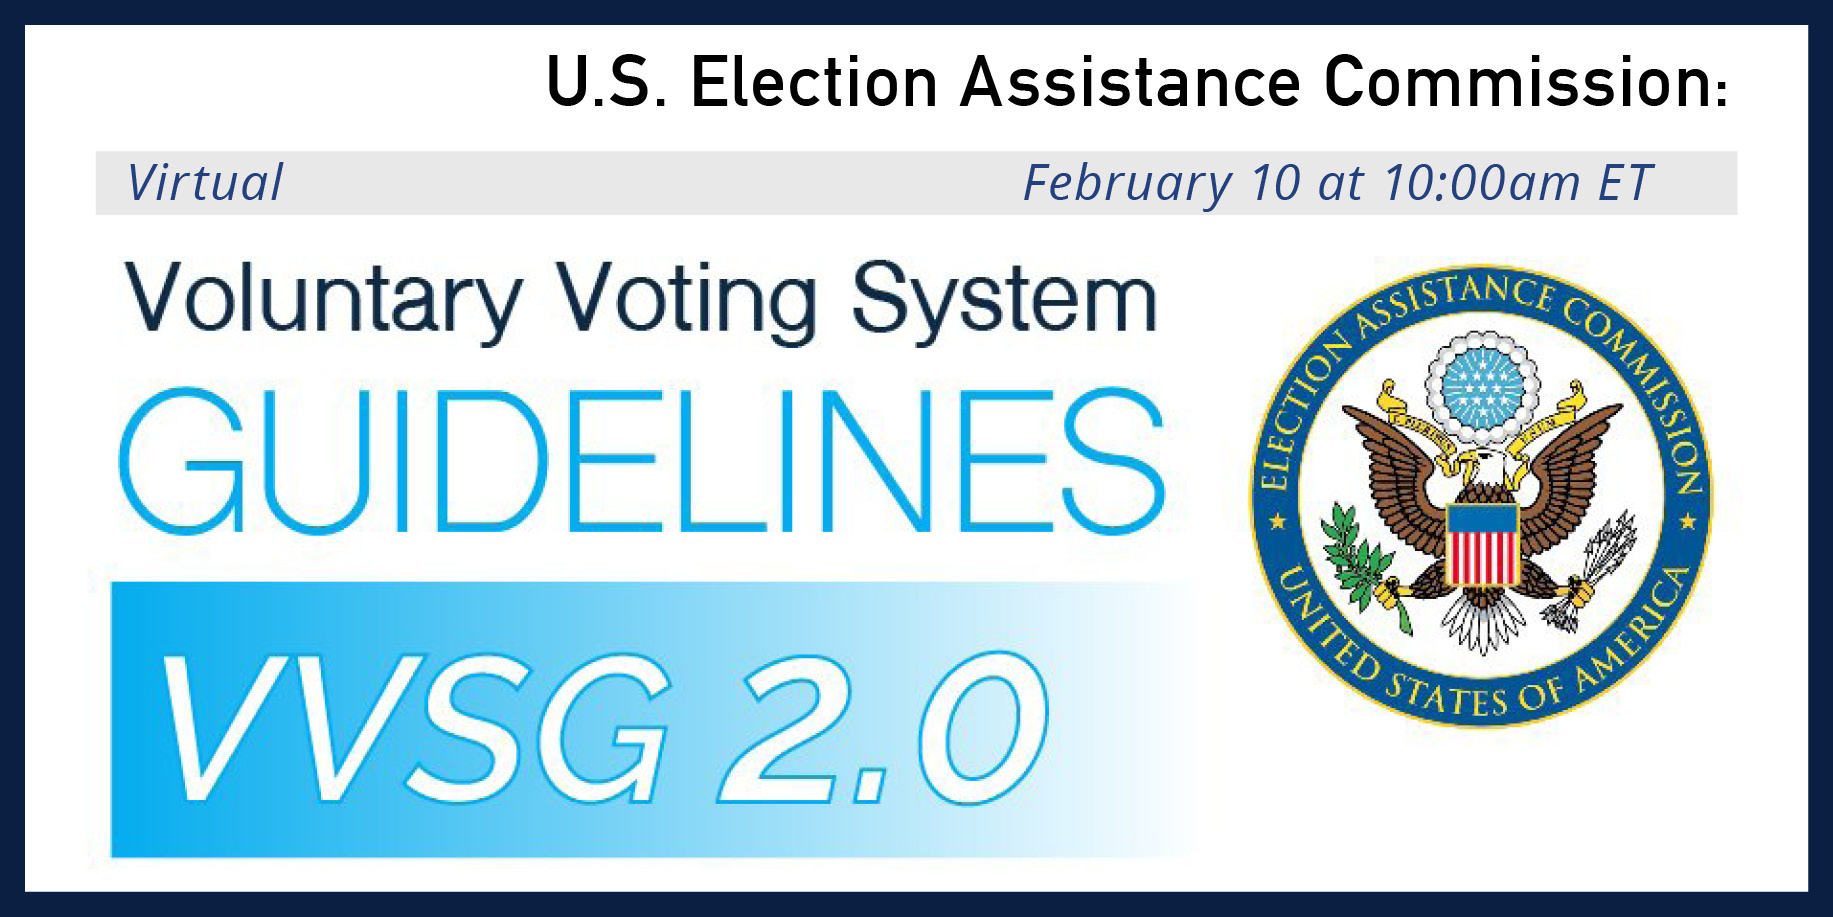 Voluntary Voting System Guidelines (VVSG) 2.0 on February 10 at 10 am ET. Virtual